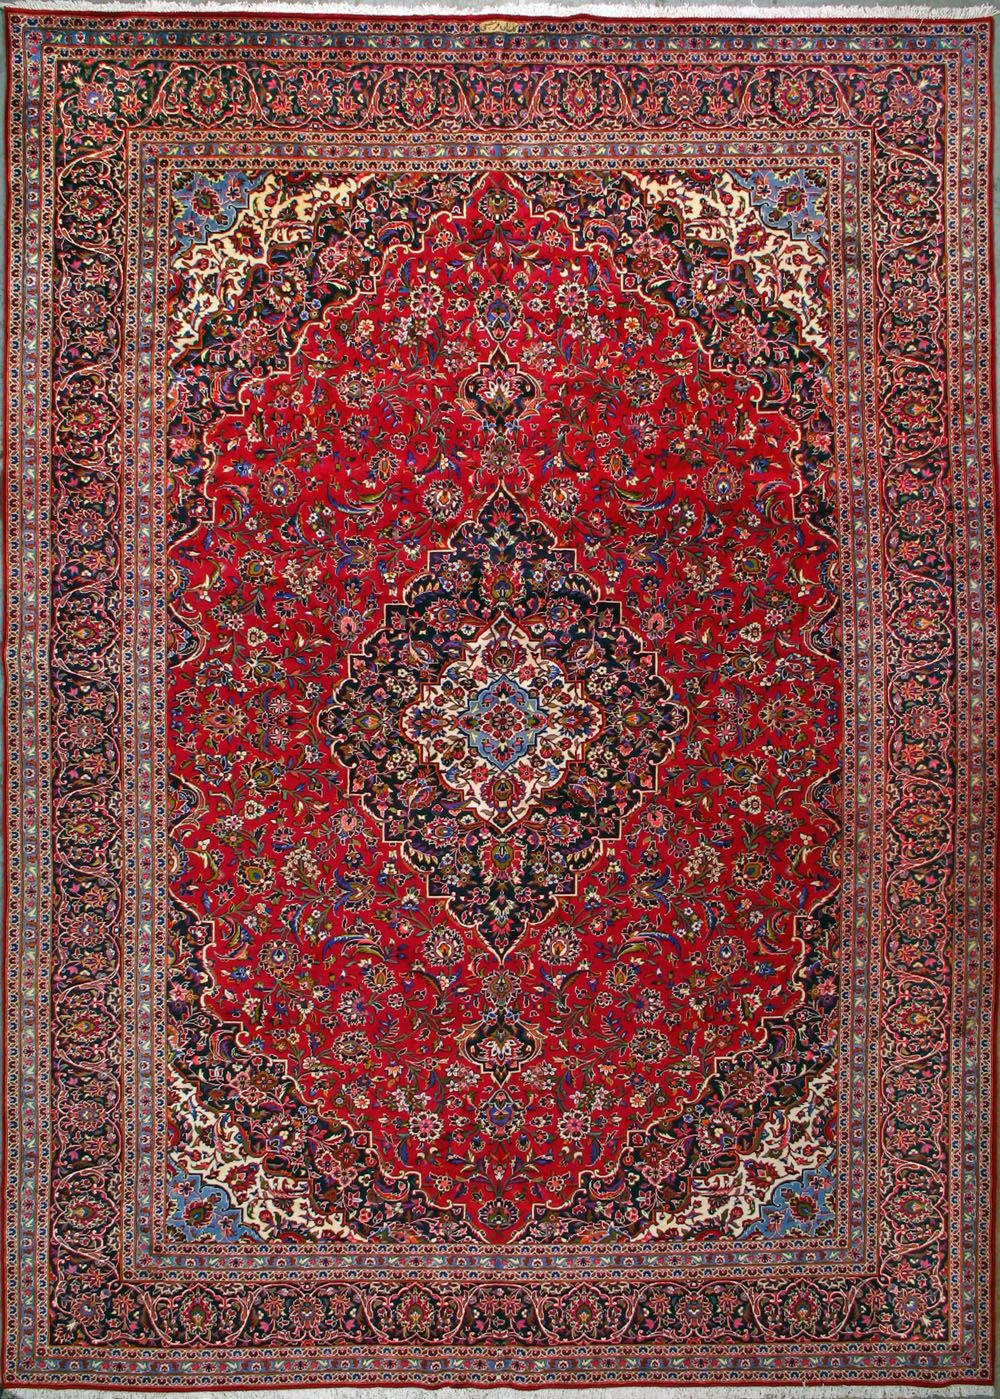 Buy Kashan Persian Rug 11 39 3 Quot X 16 39 1 Quot Authentic Kashan Handmade Rug